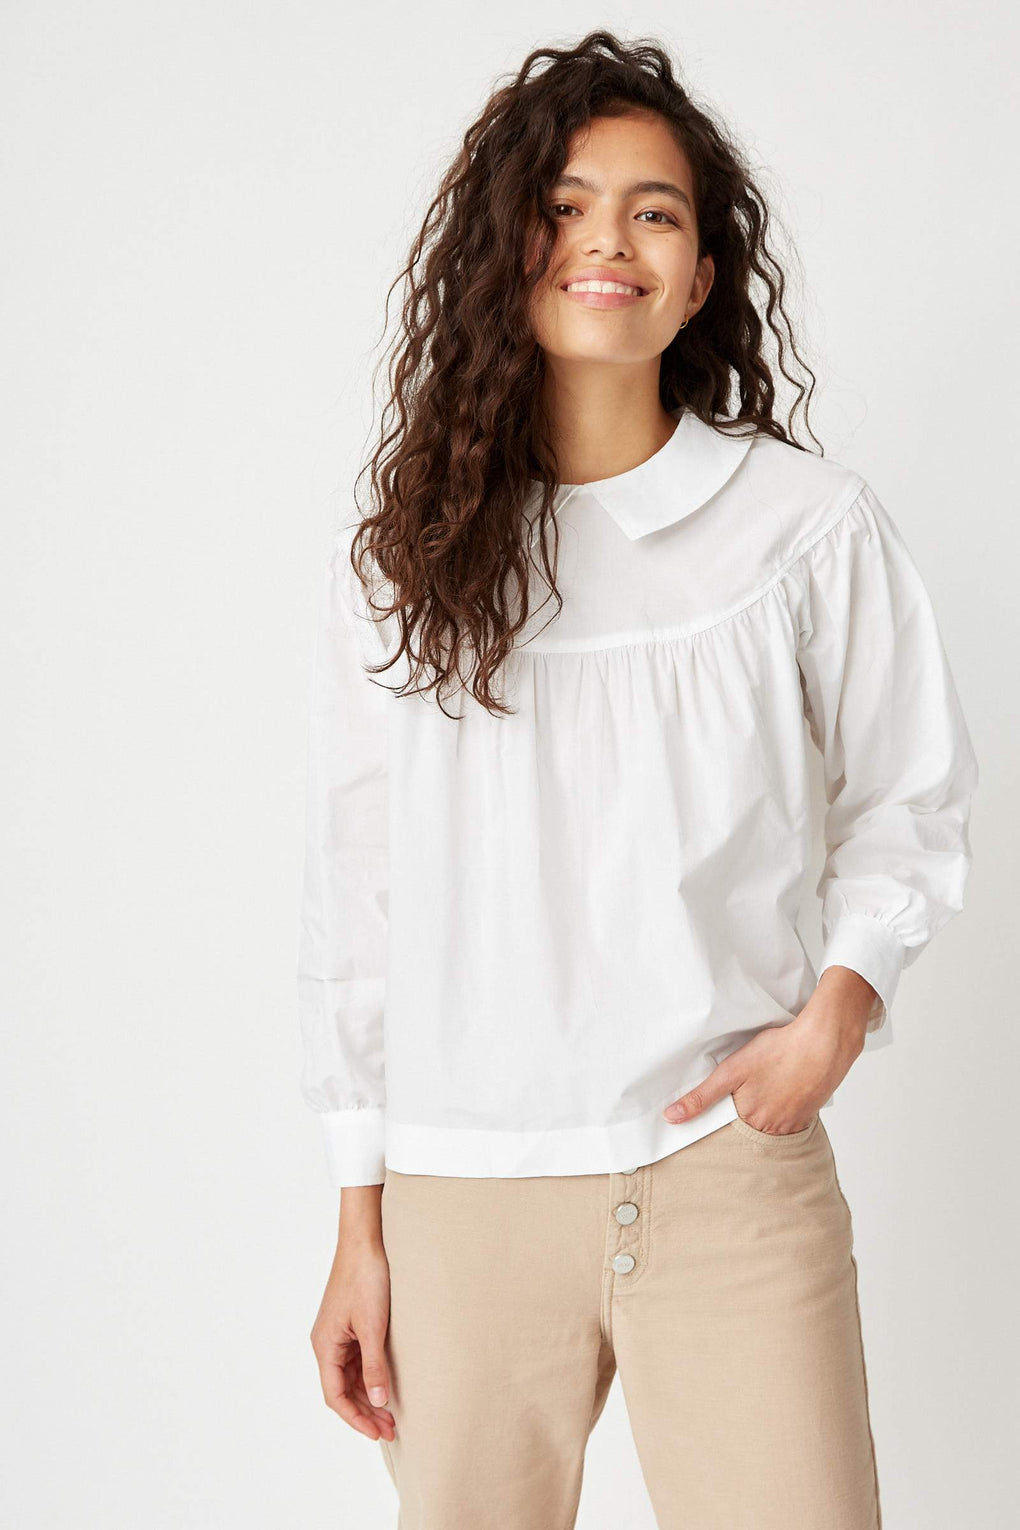 Idun-Saint Paul-Wood Wood-Maia Top-white shirt-white top